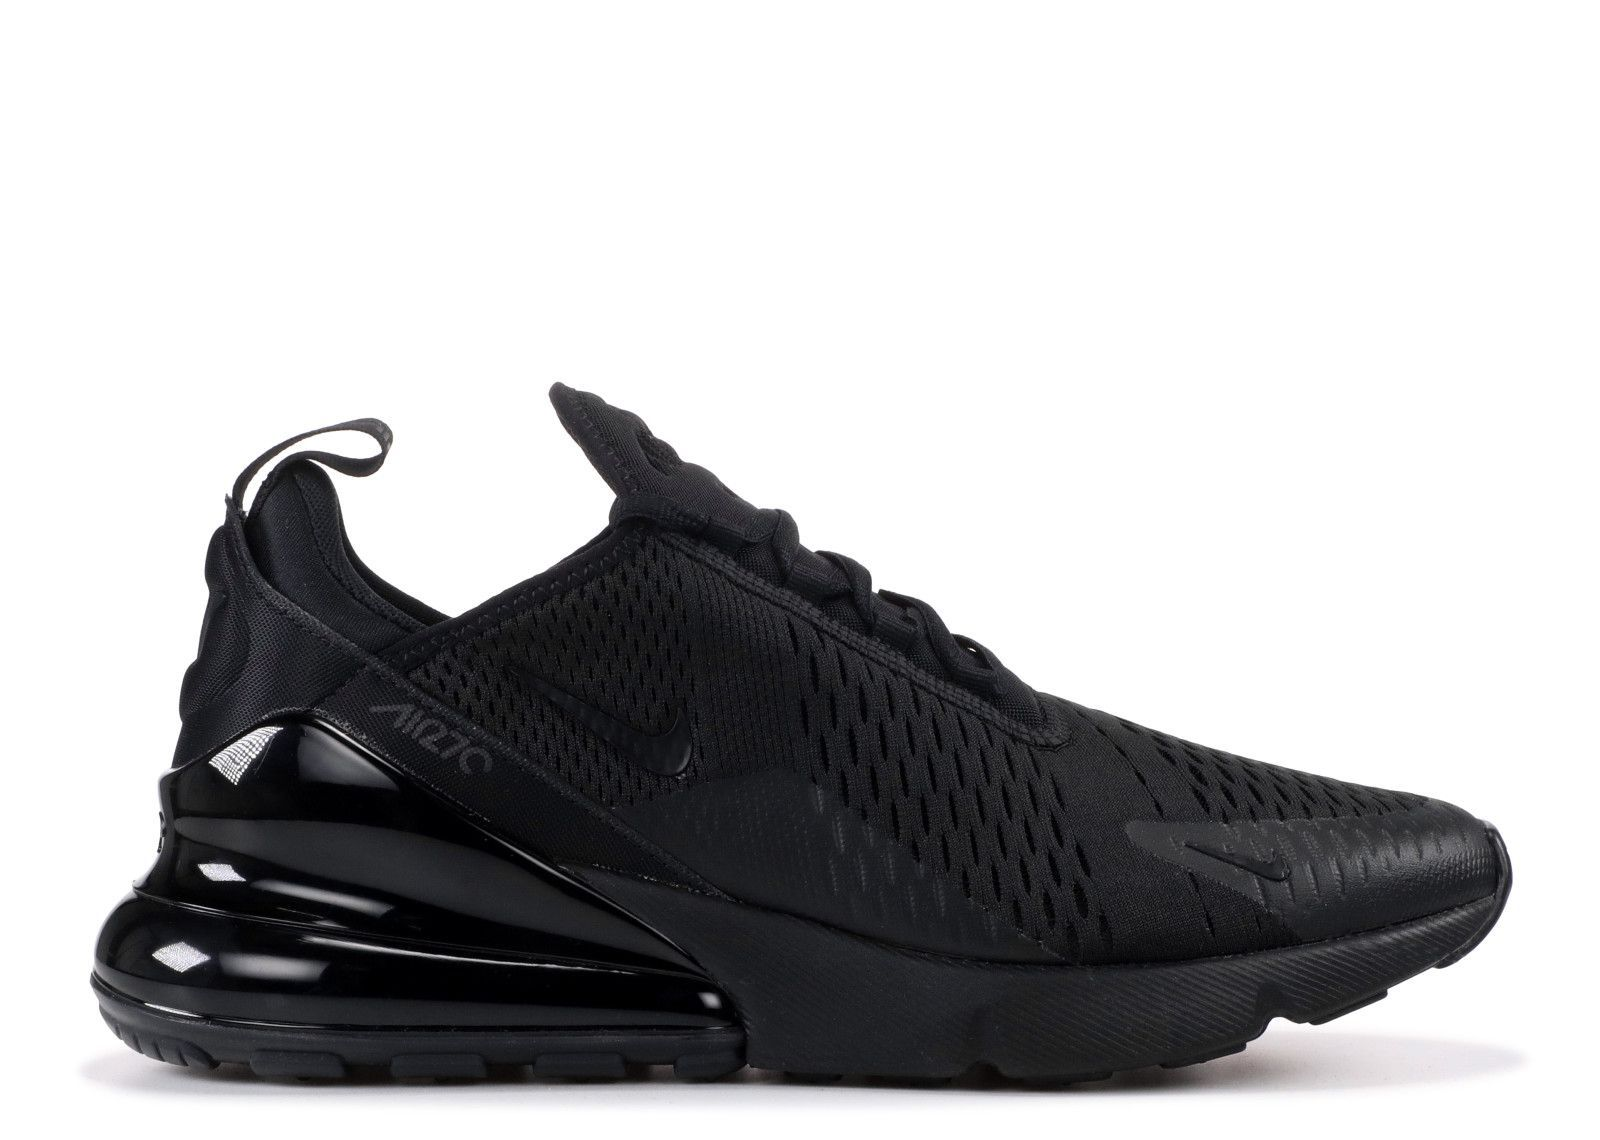 c55aec4b24edec Nike AIR 27 C Black Running Shoes - Buy Nike AIR 27 C Black Running Shoes  Online at Best Prices in India on Snapdeal